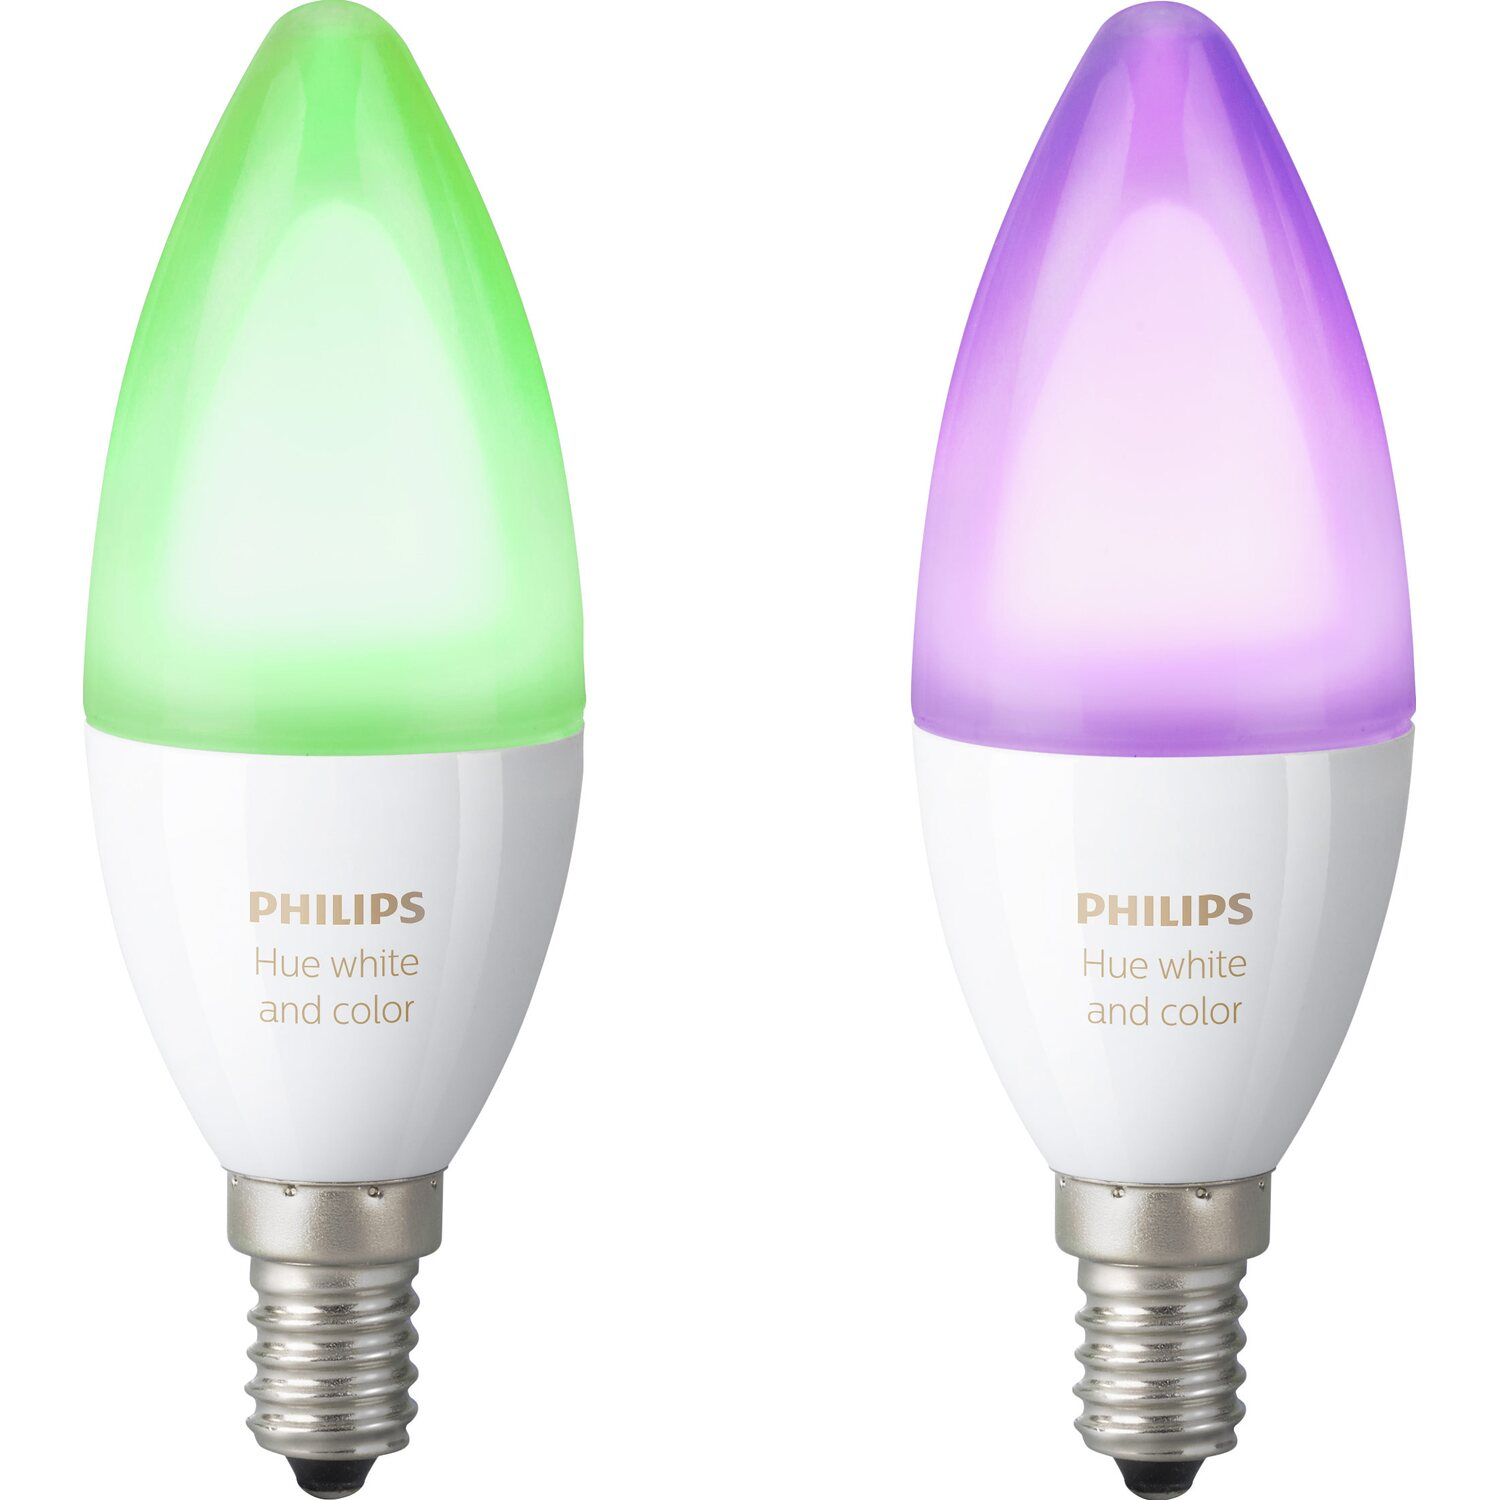 philips hue led lampe white color ambiance doppelpack rgbw e14 6 5 w eek a kaufen bei obi. Black Bedroom Furniture Sets. Home Design Ideas